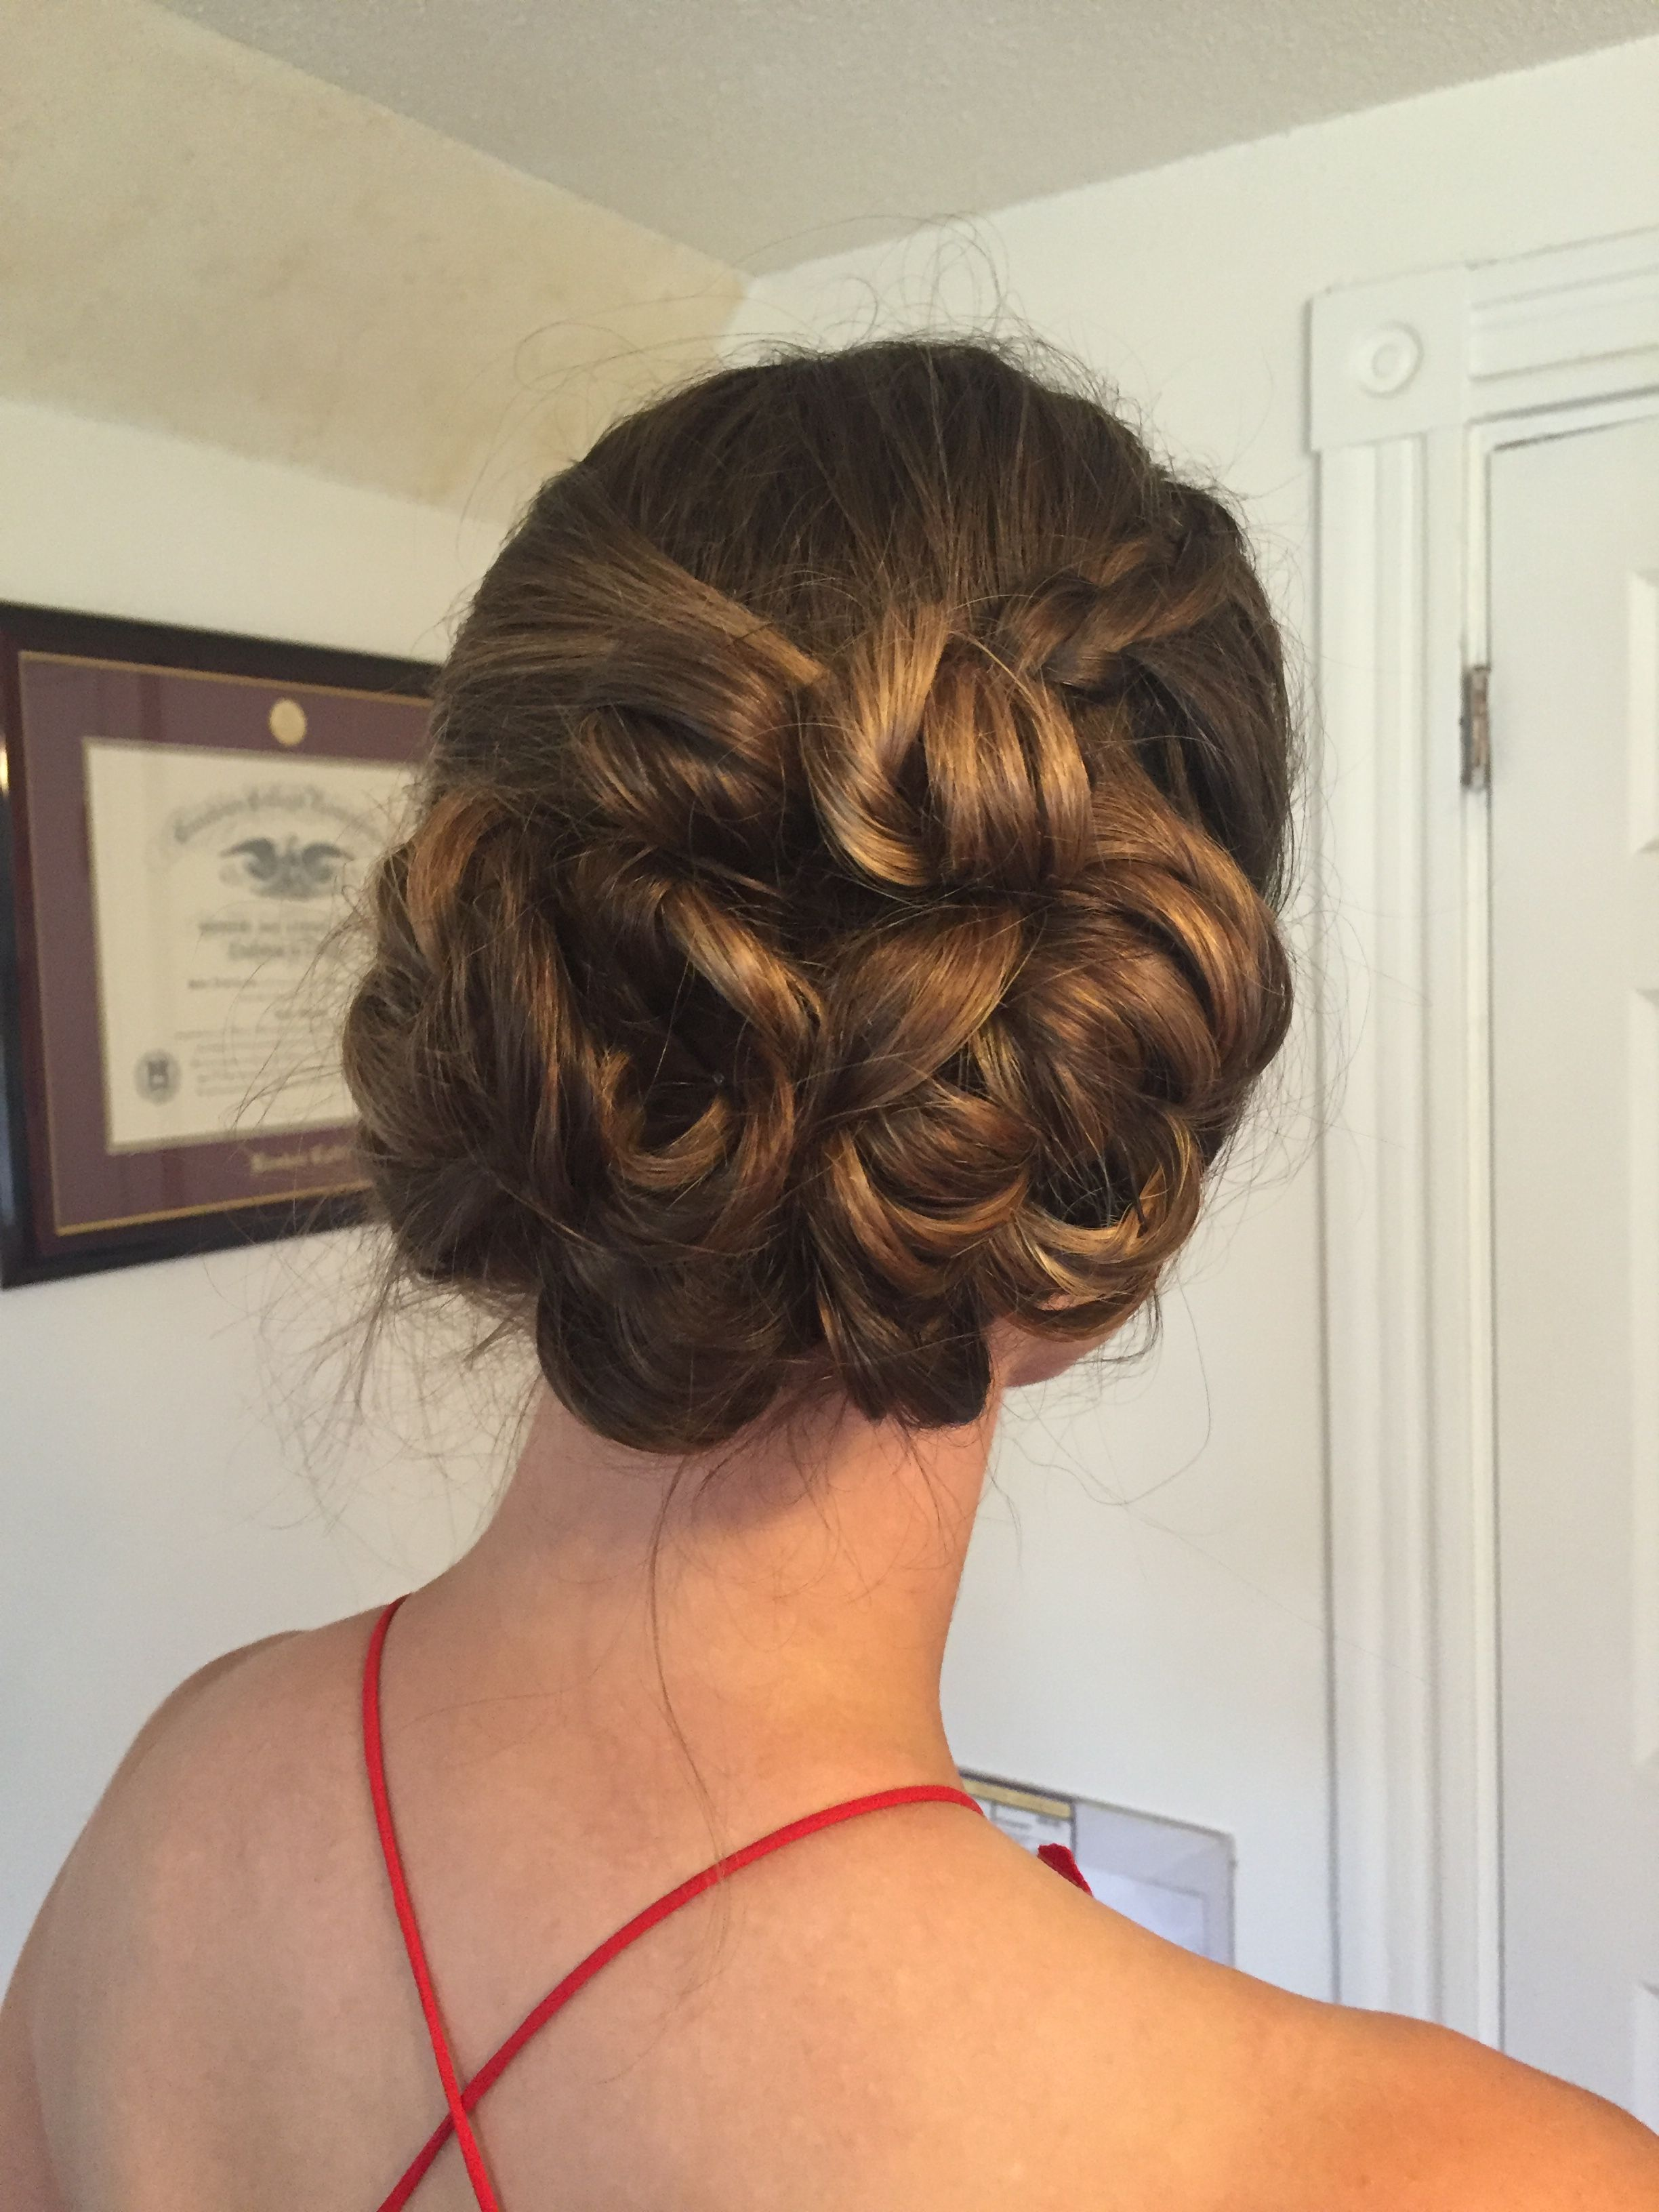 Low side bun updo for wedding guest or bridesmaid hair with side braid and pinned curls #lowsidebuns